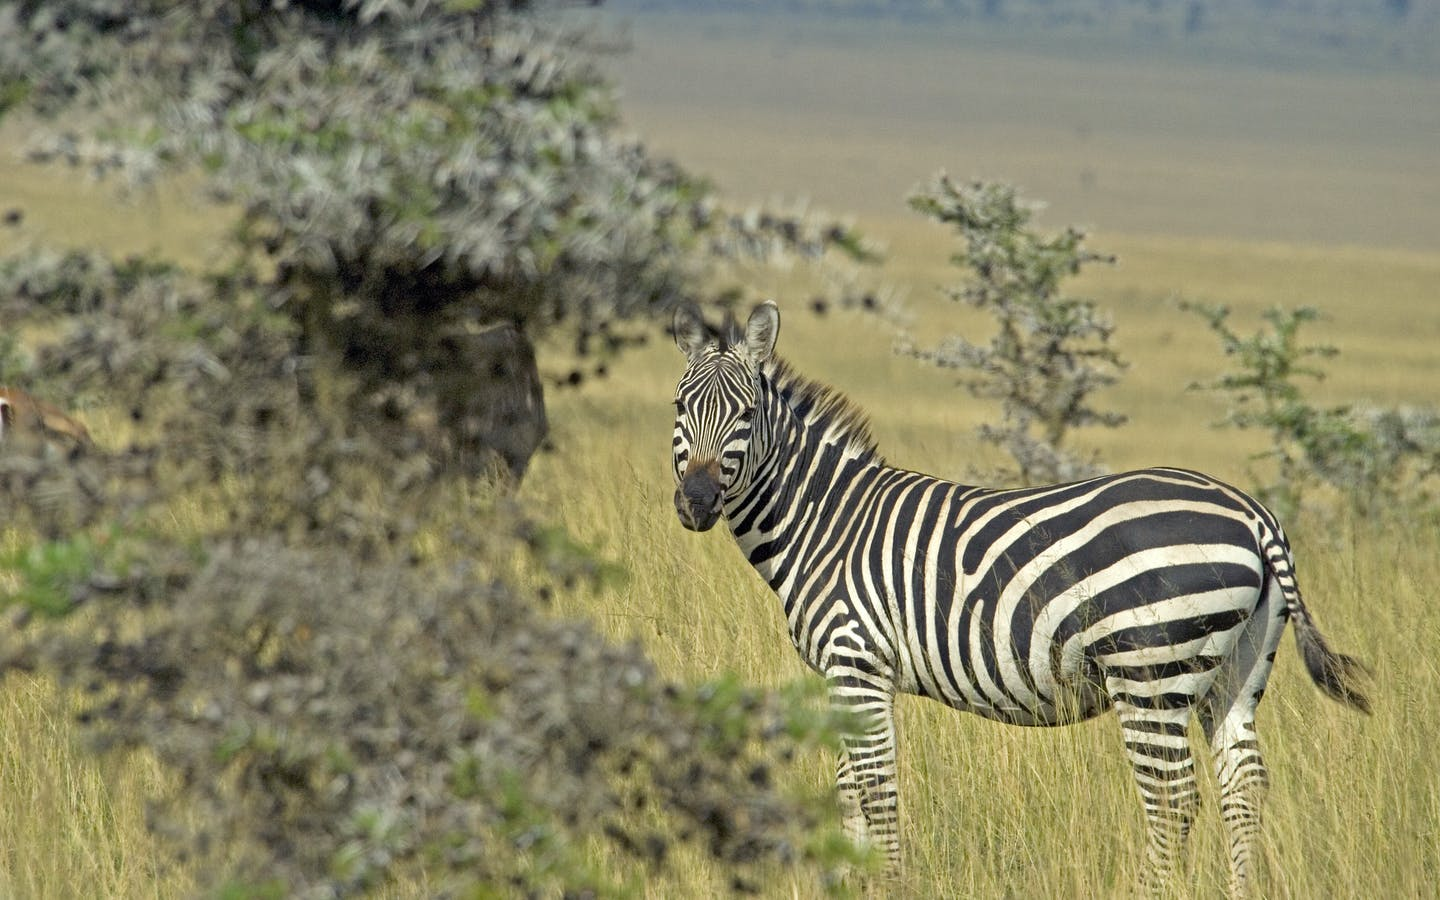 Zebra in Kenya.